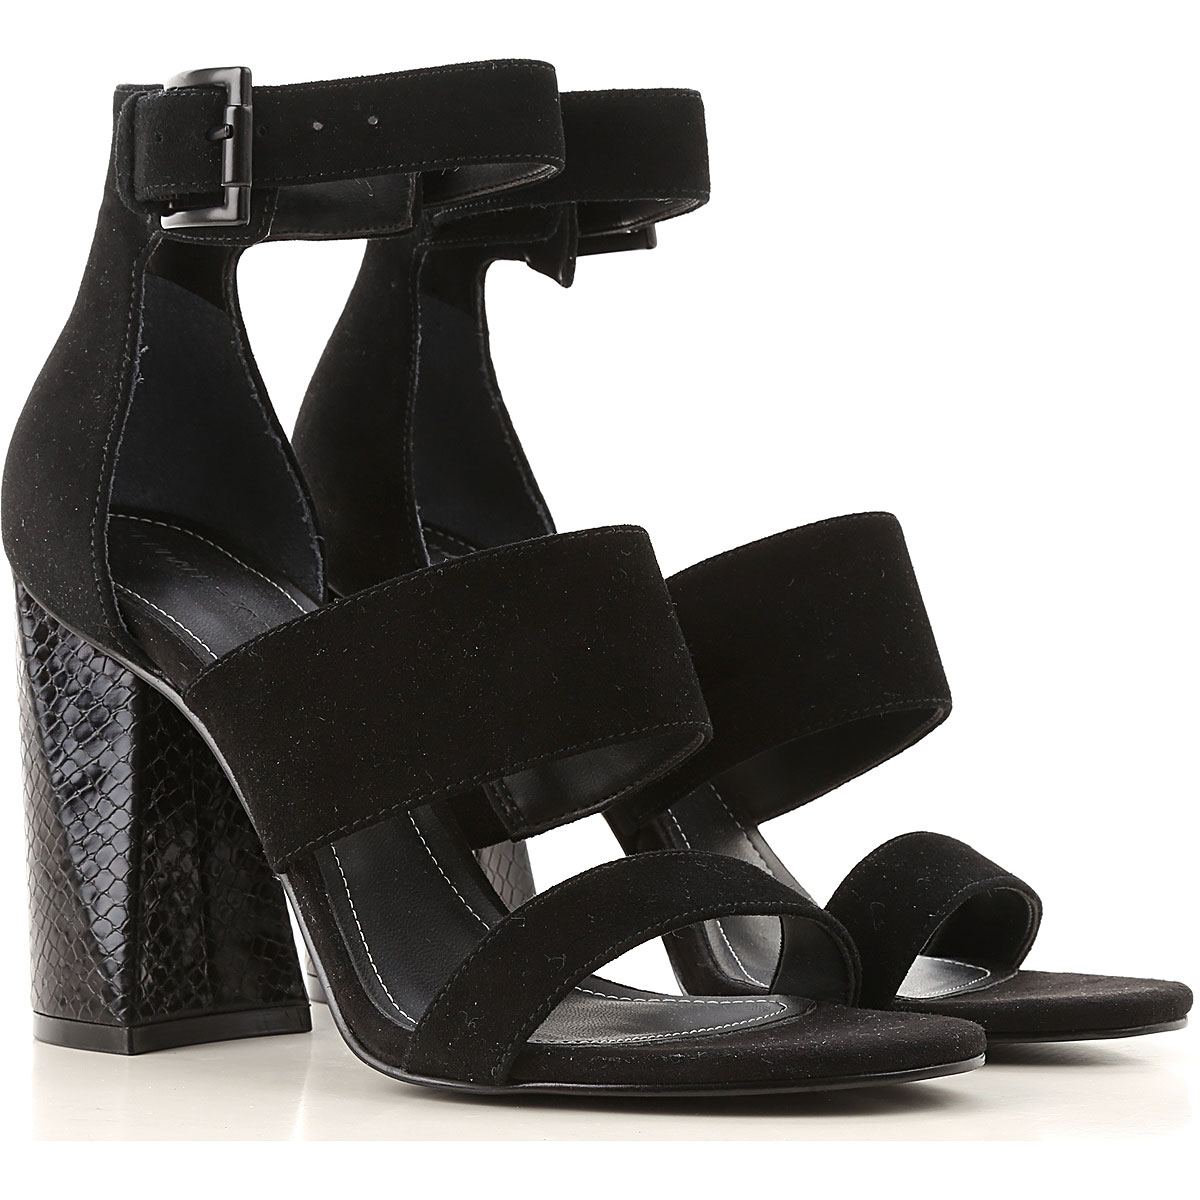 Kendall Kylie Sandals for Women On Sale in Outlet, Black, Suede leather, 2019, 7